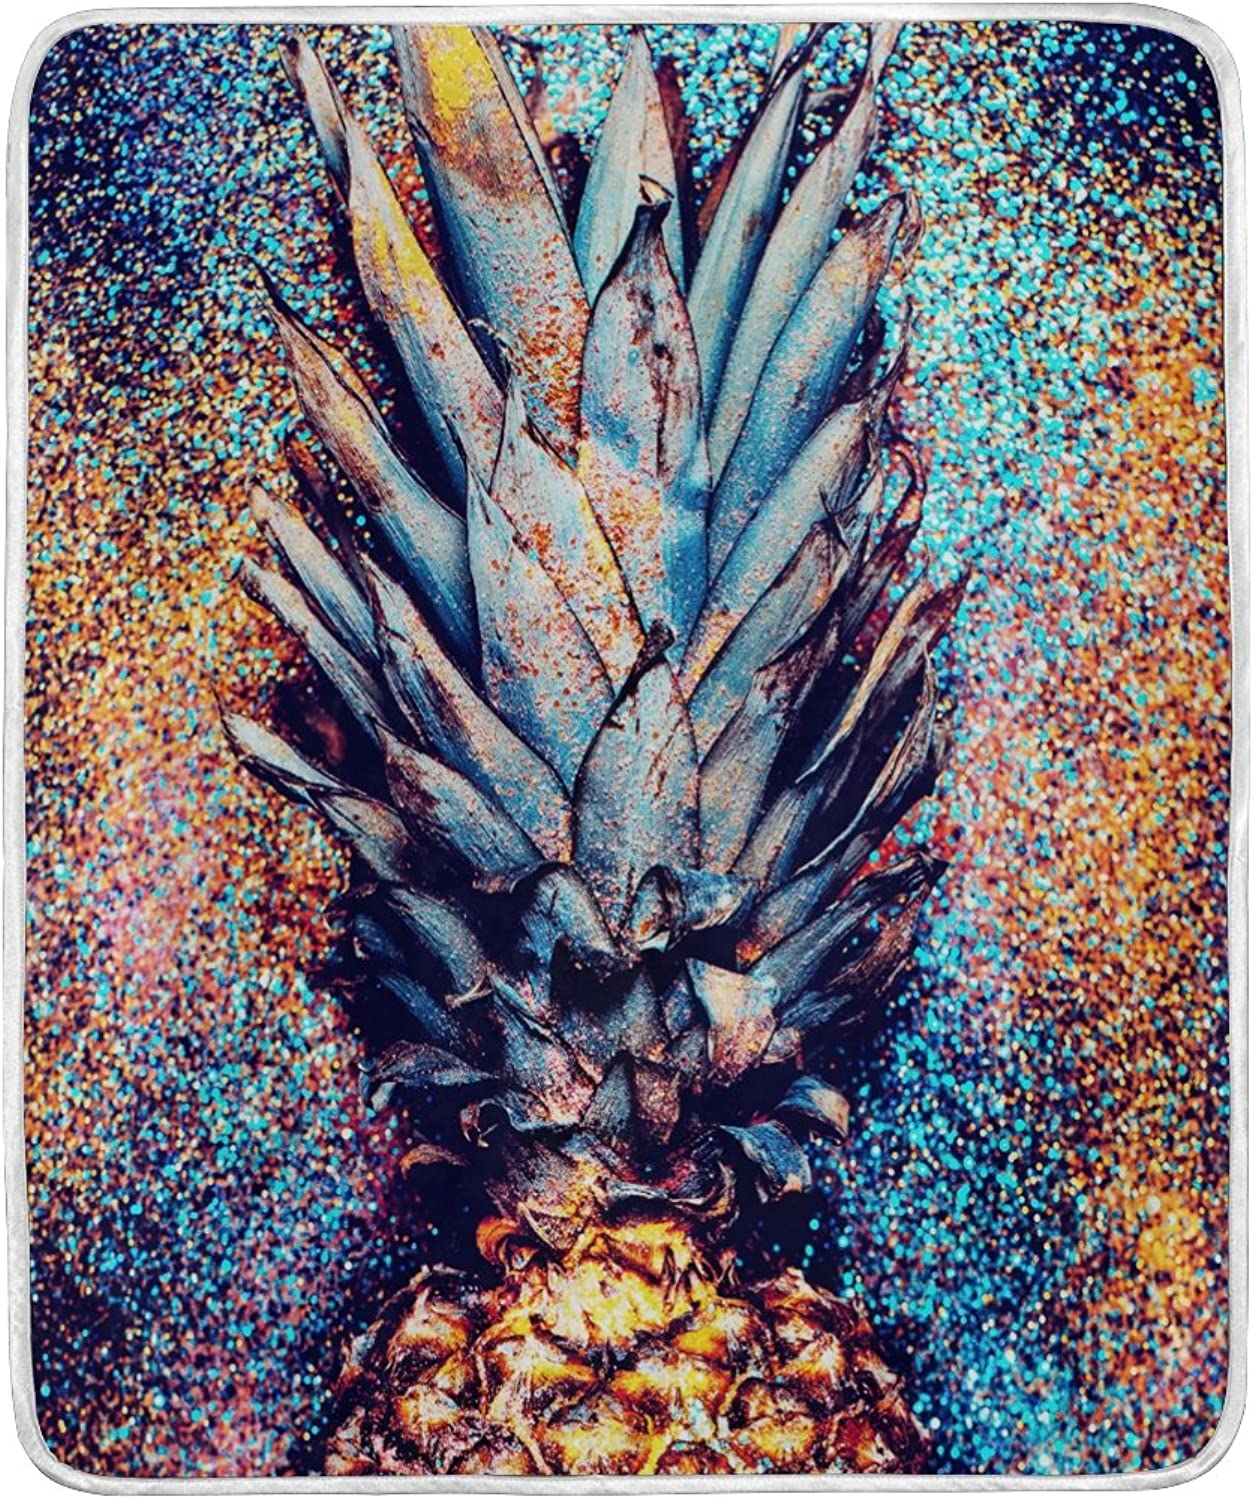 ALAZA Home Decor Glitter Abstract Pineapple Fruit Blanket Soft Warm Blankets for Bed Couch Sofa Lightweight Travelling Camping 60 x 50 inch Throw Size for Kids Boys Women